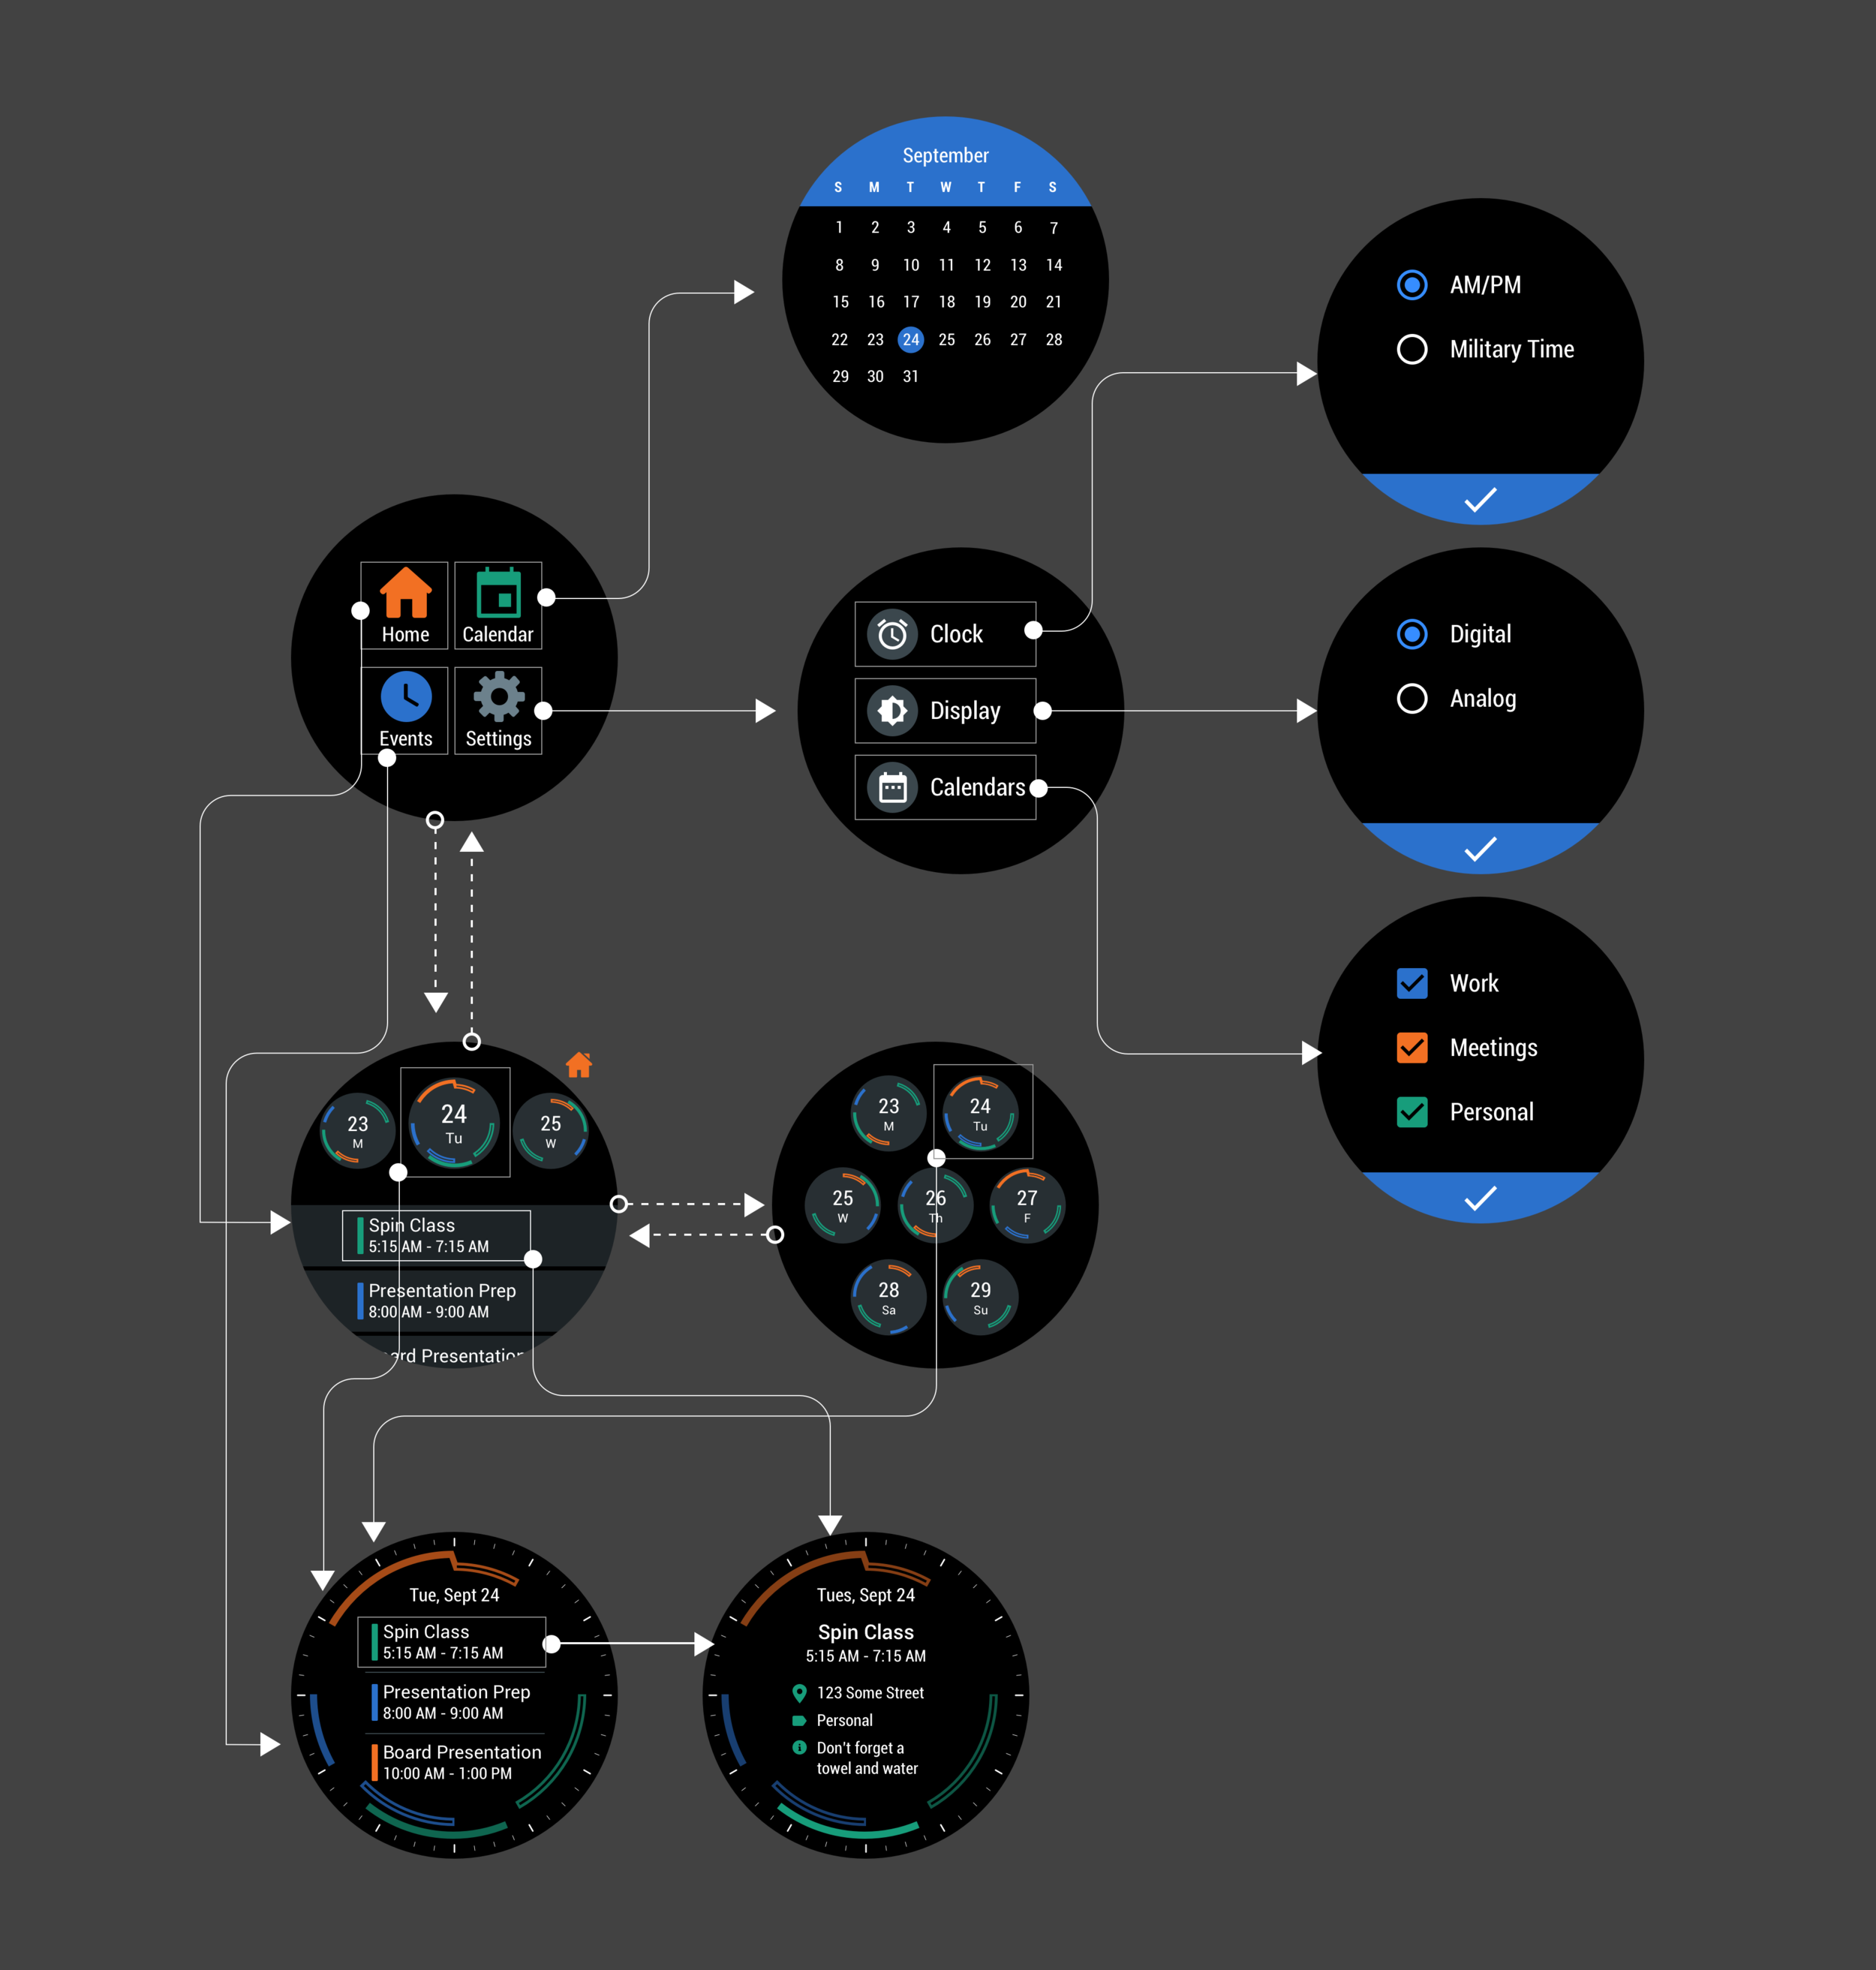 A user flow chart for the smart watch application